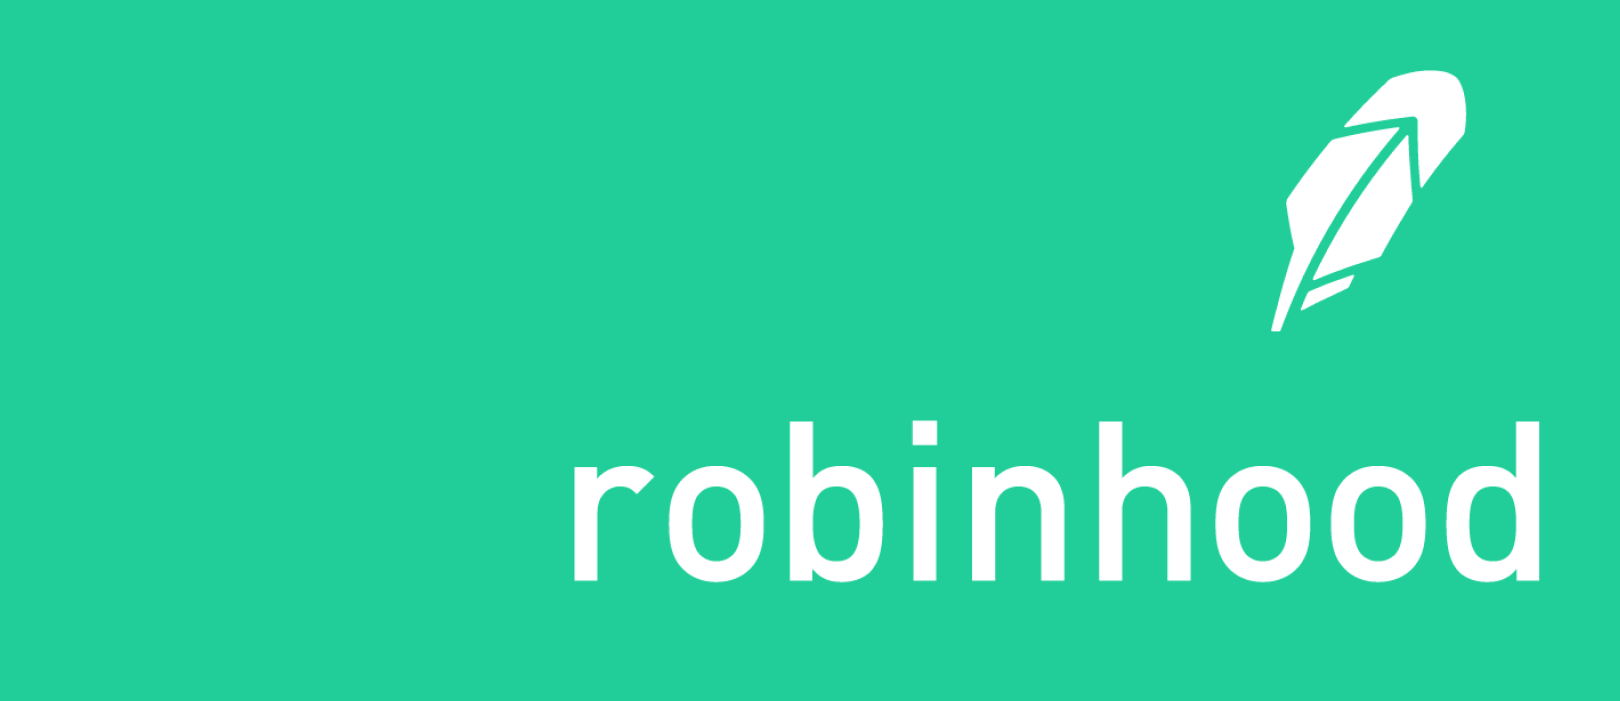 Frame 1 12 - How to Develop an App Like Robinhood